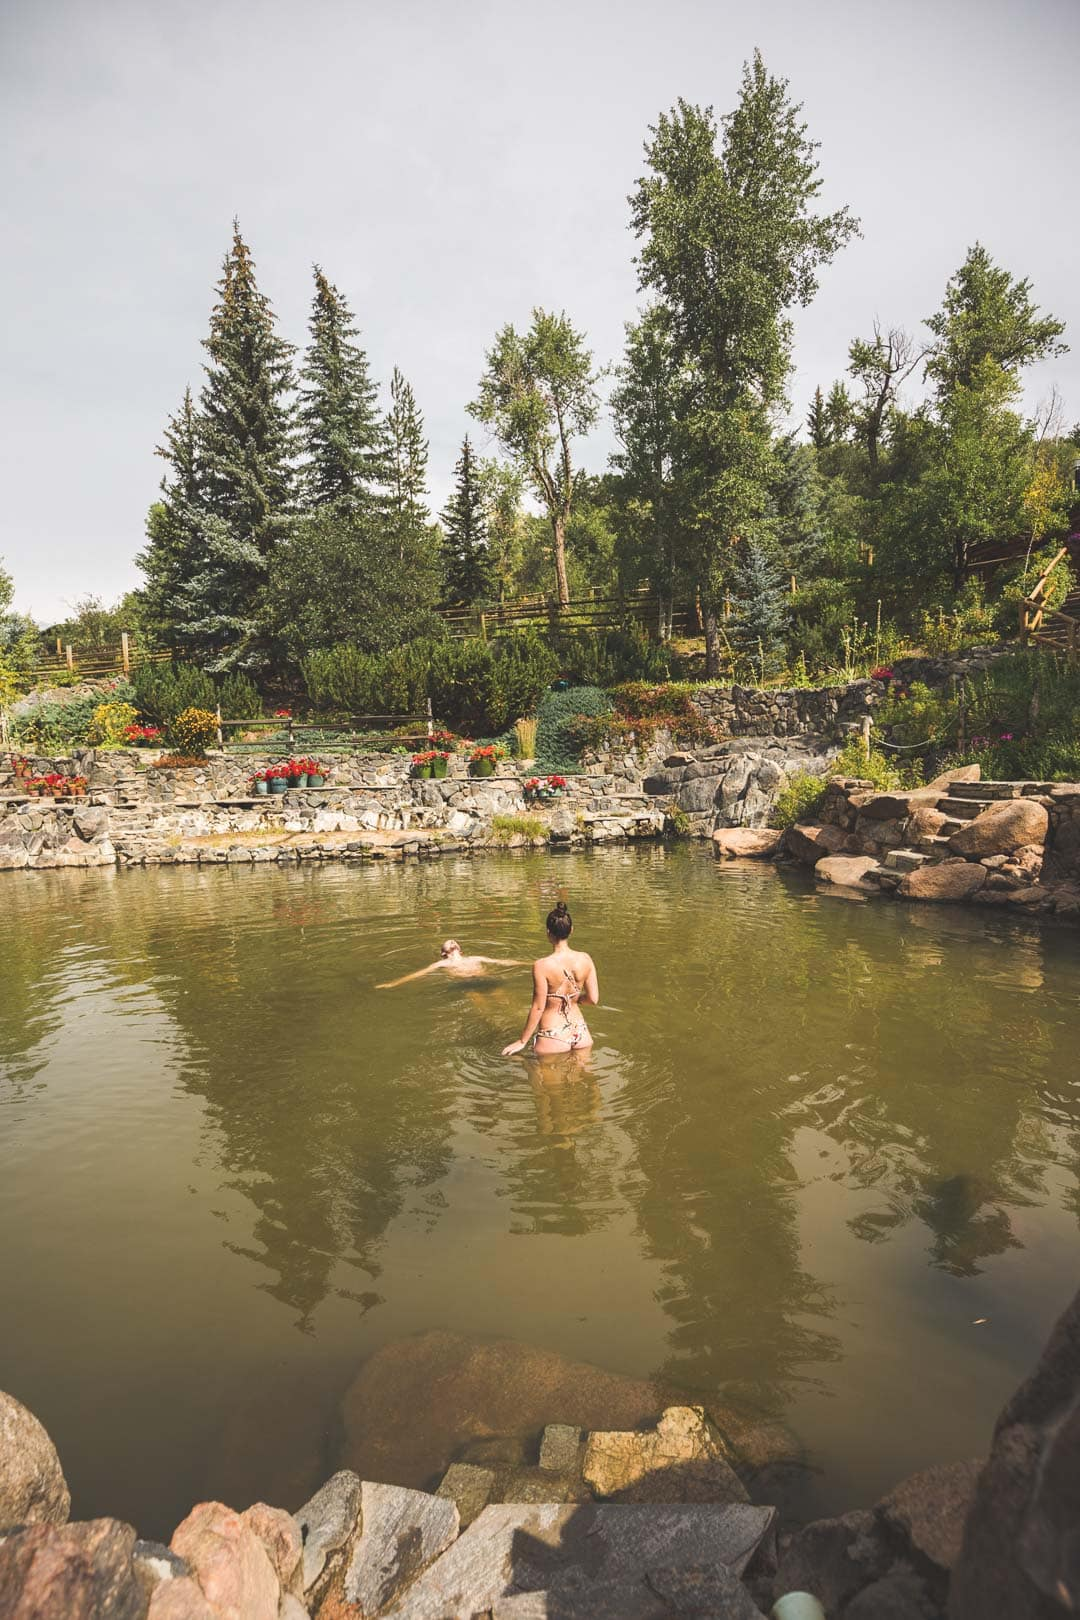 A couple enjoying hot springs together in Steamboat Springs, Colorado